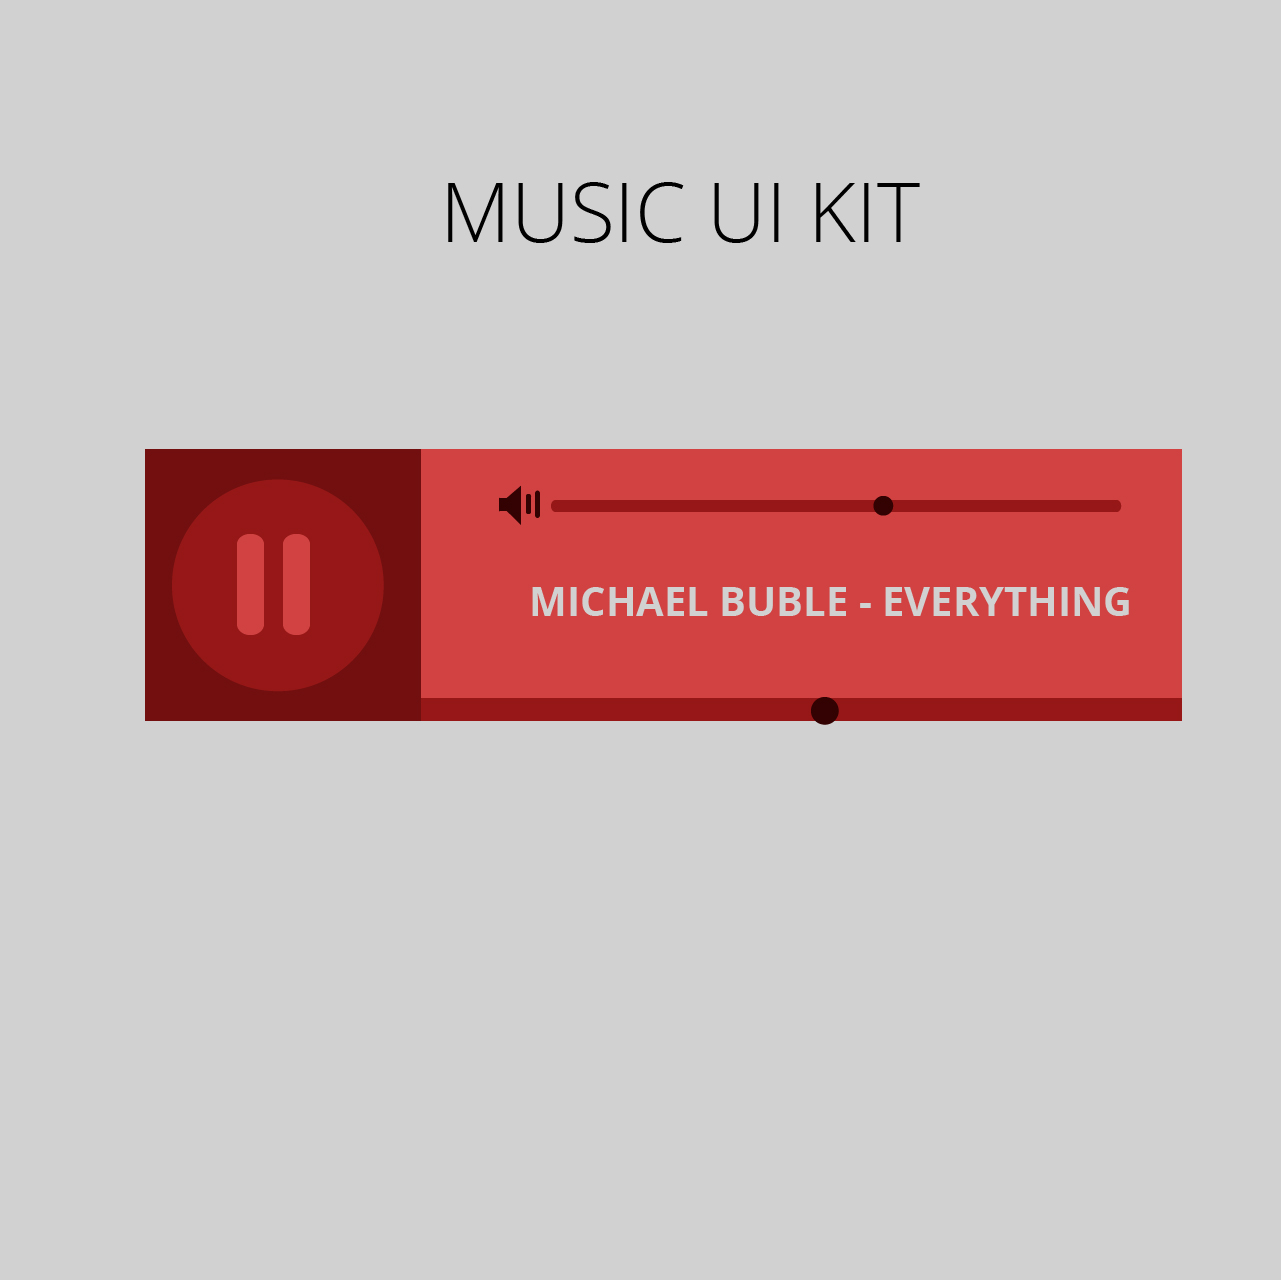 how to create a music website using html